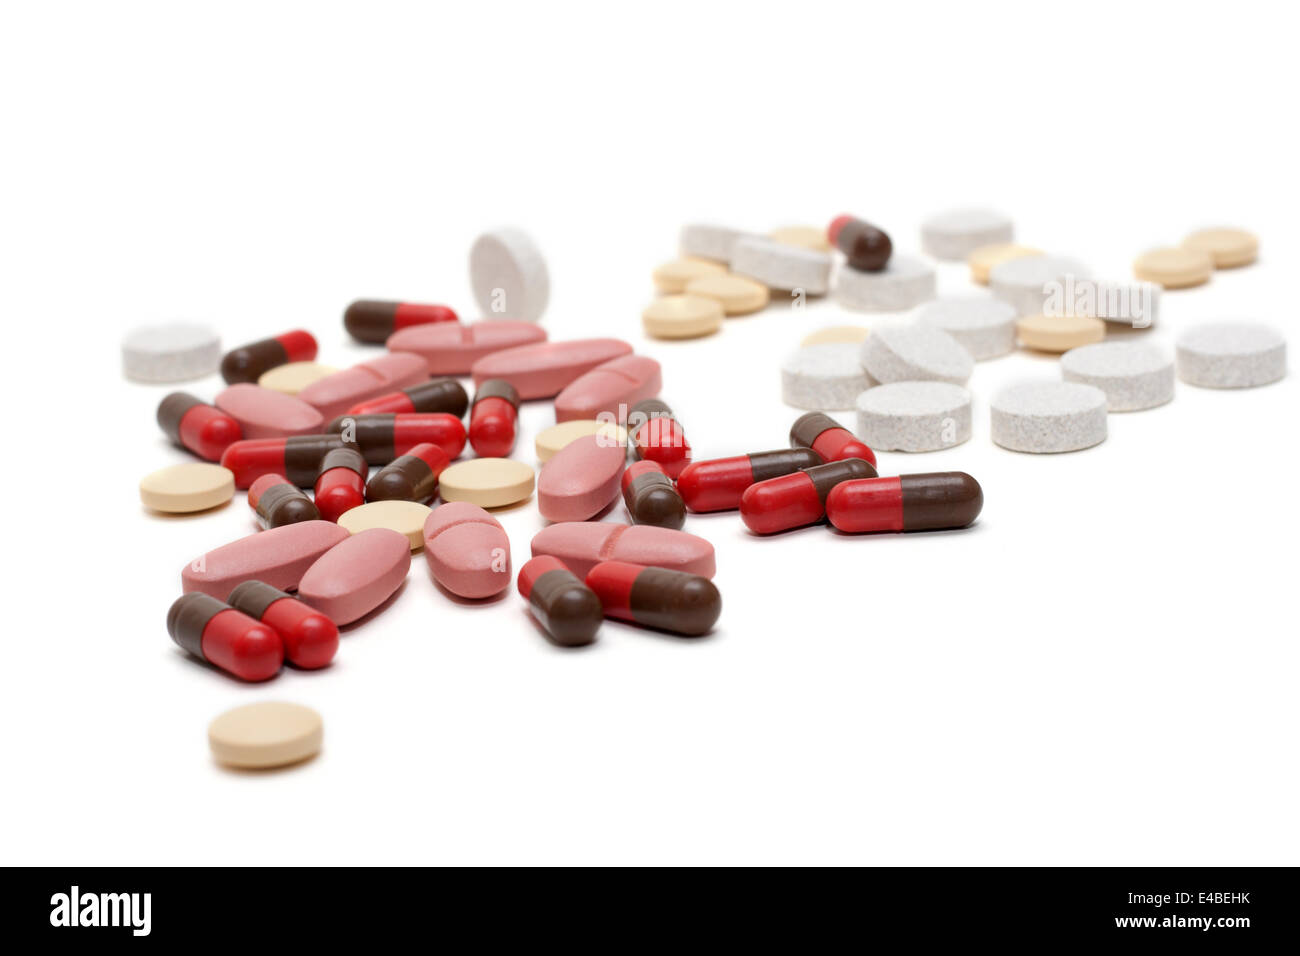 Disposit of the tablets, pill, capsules - Stock Image